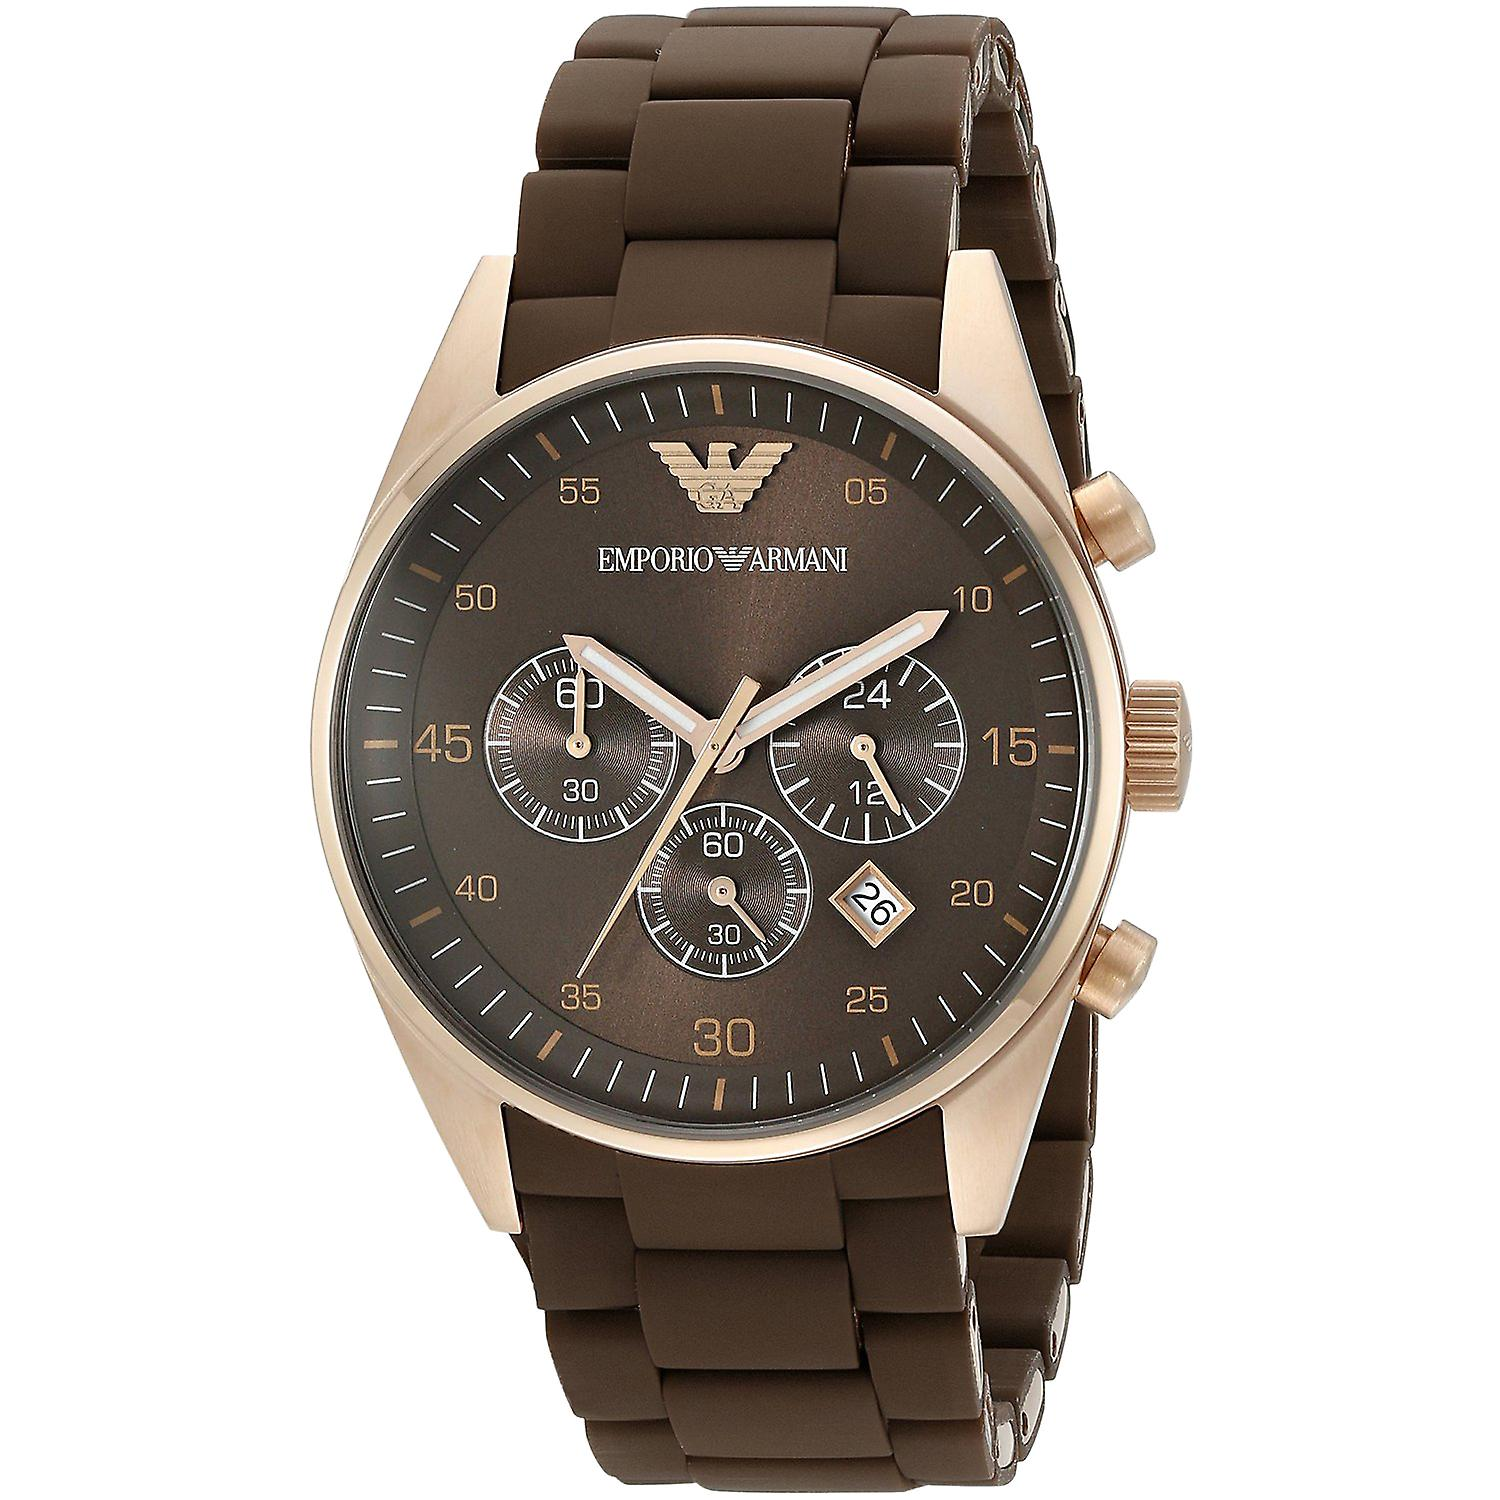 Emporio Armani AR5890 Brown & Gold Sports Silicone Chronograph Watch